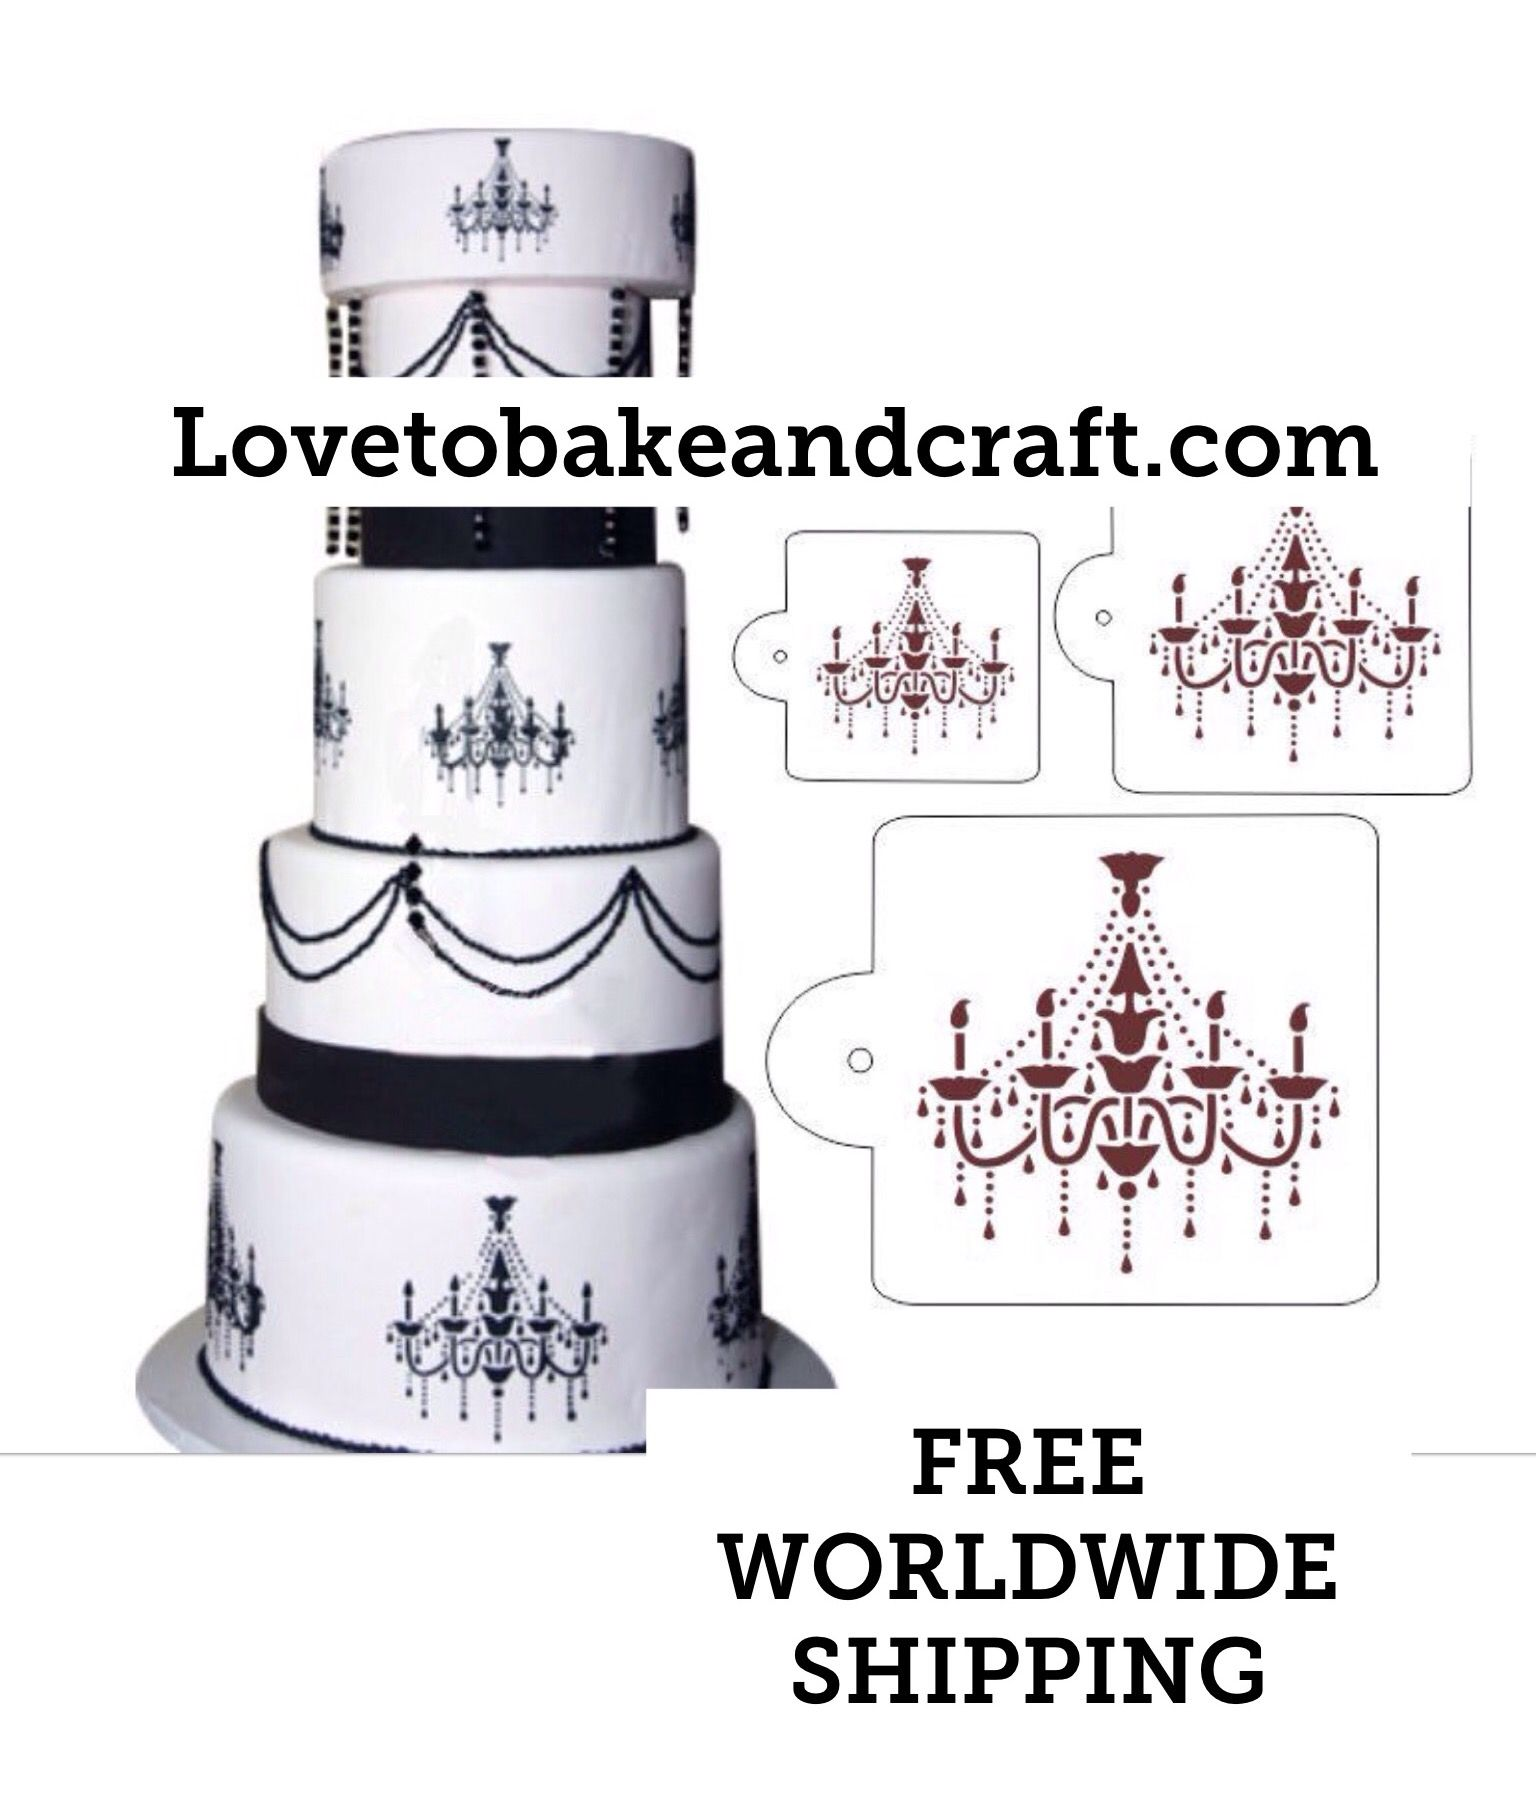 Chandelier Cake Stencil Wedding Decorating Free Worldwide 1 2 4